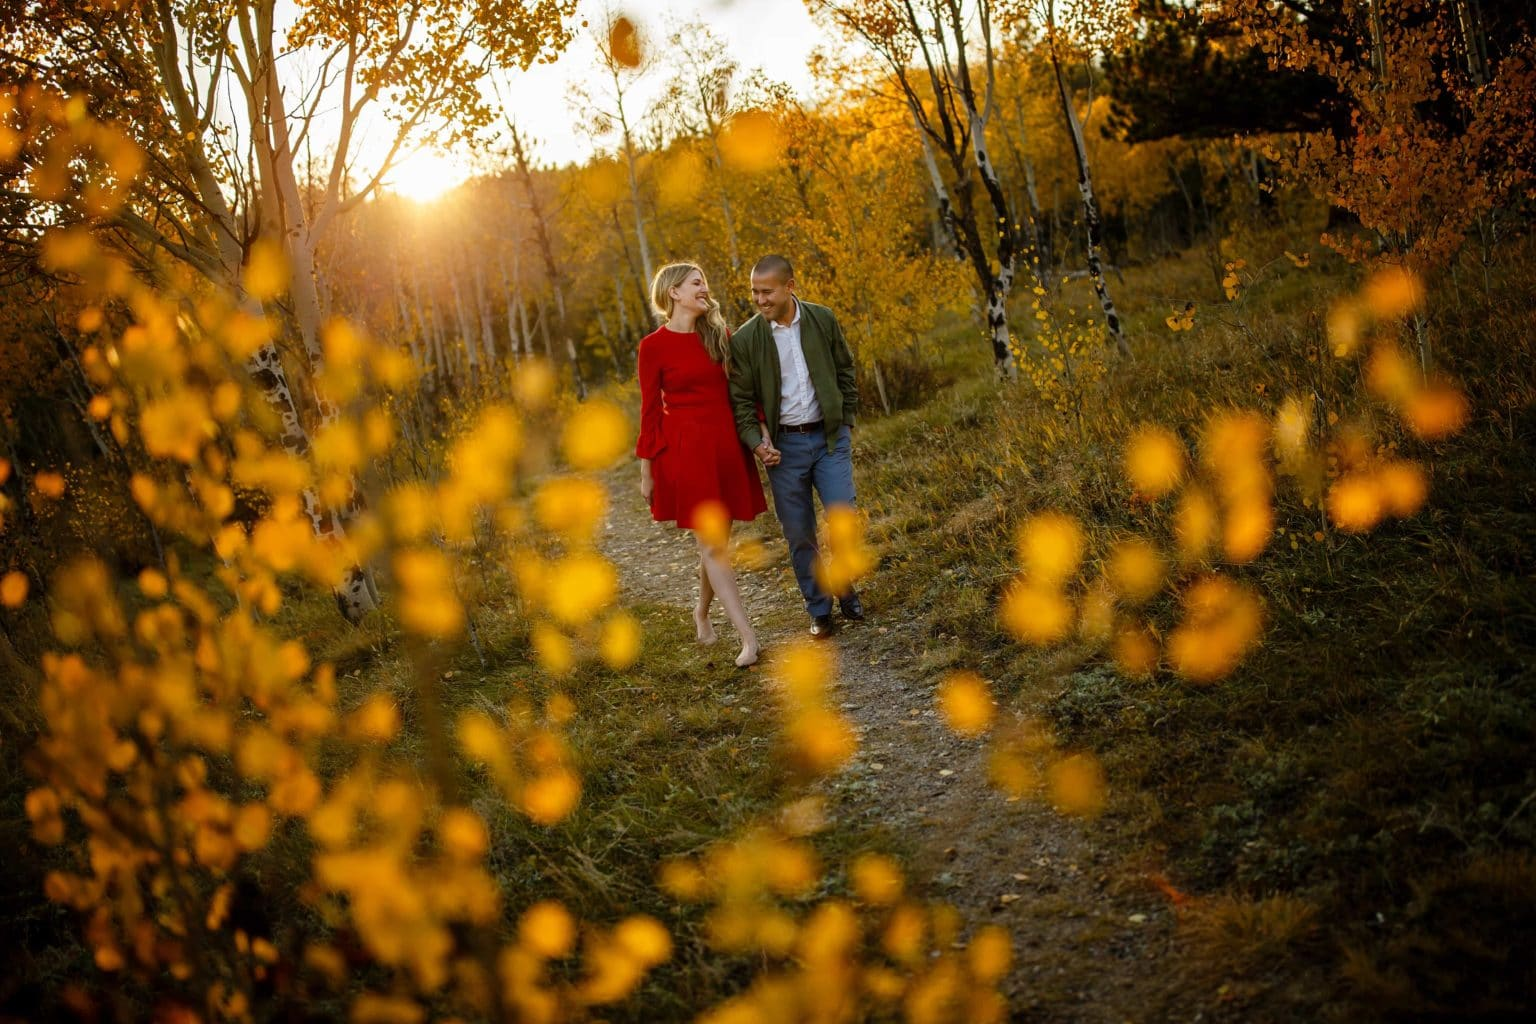 Paige and Adam walk along Mule Deer Trail during their Golden Gate Canyon State Park engagement